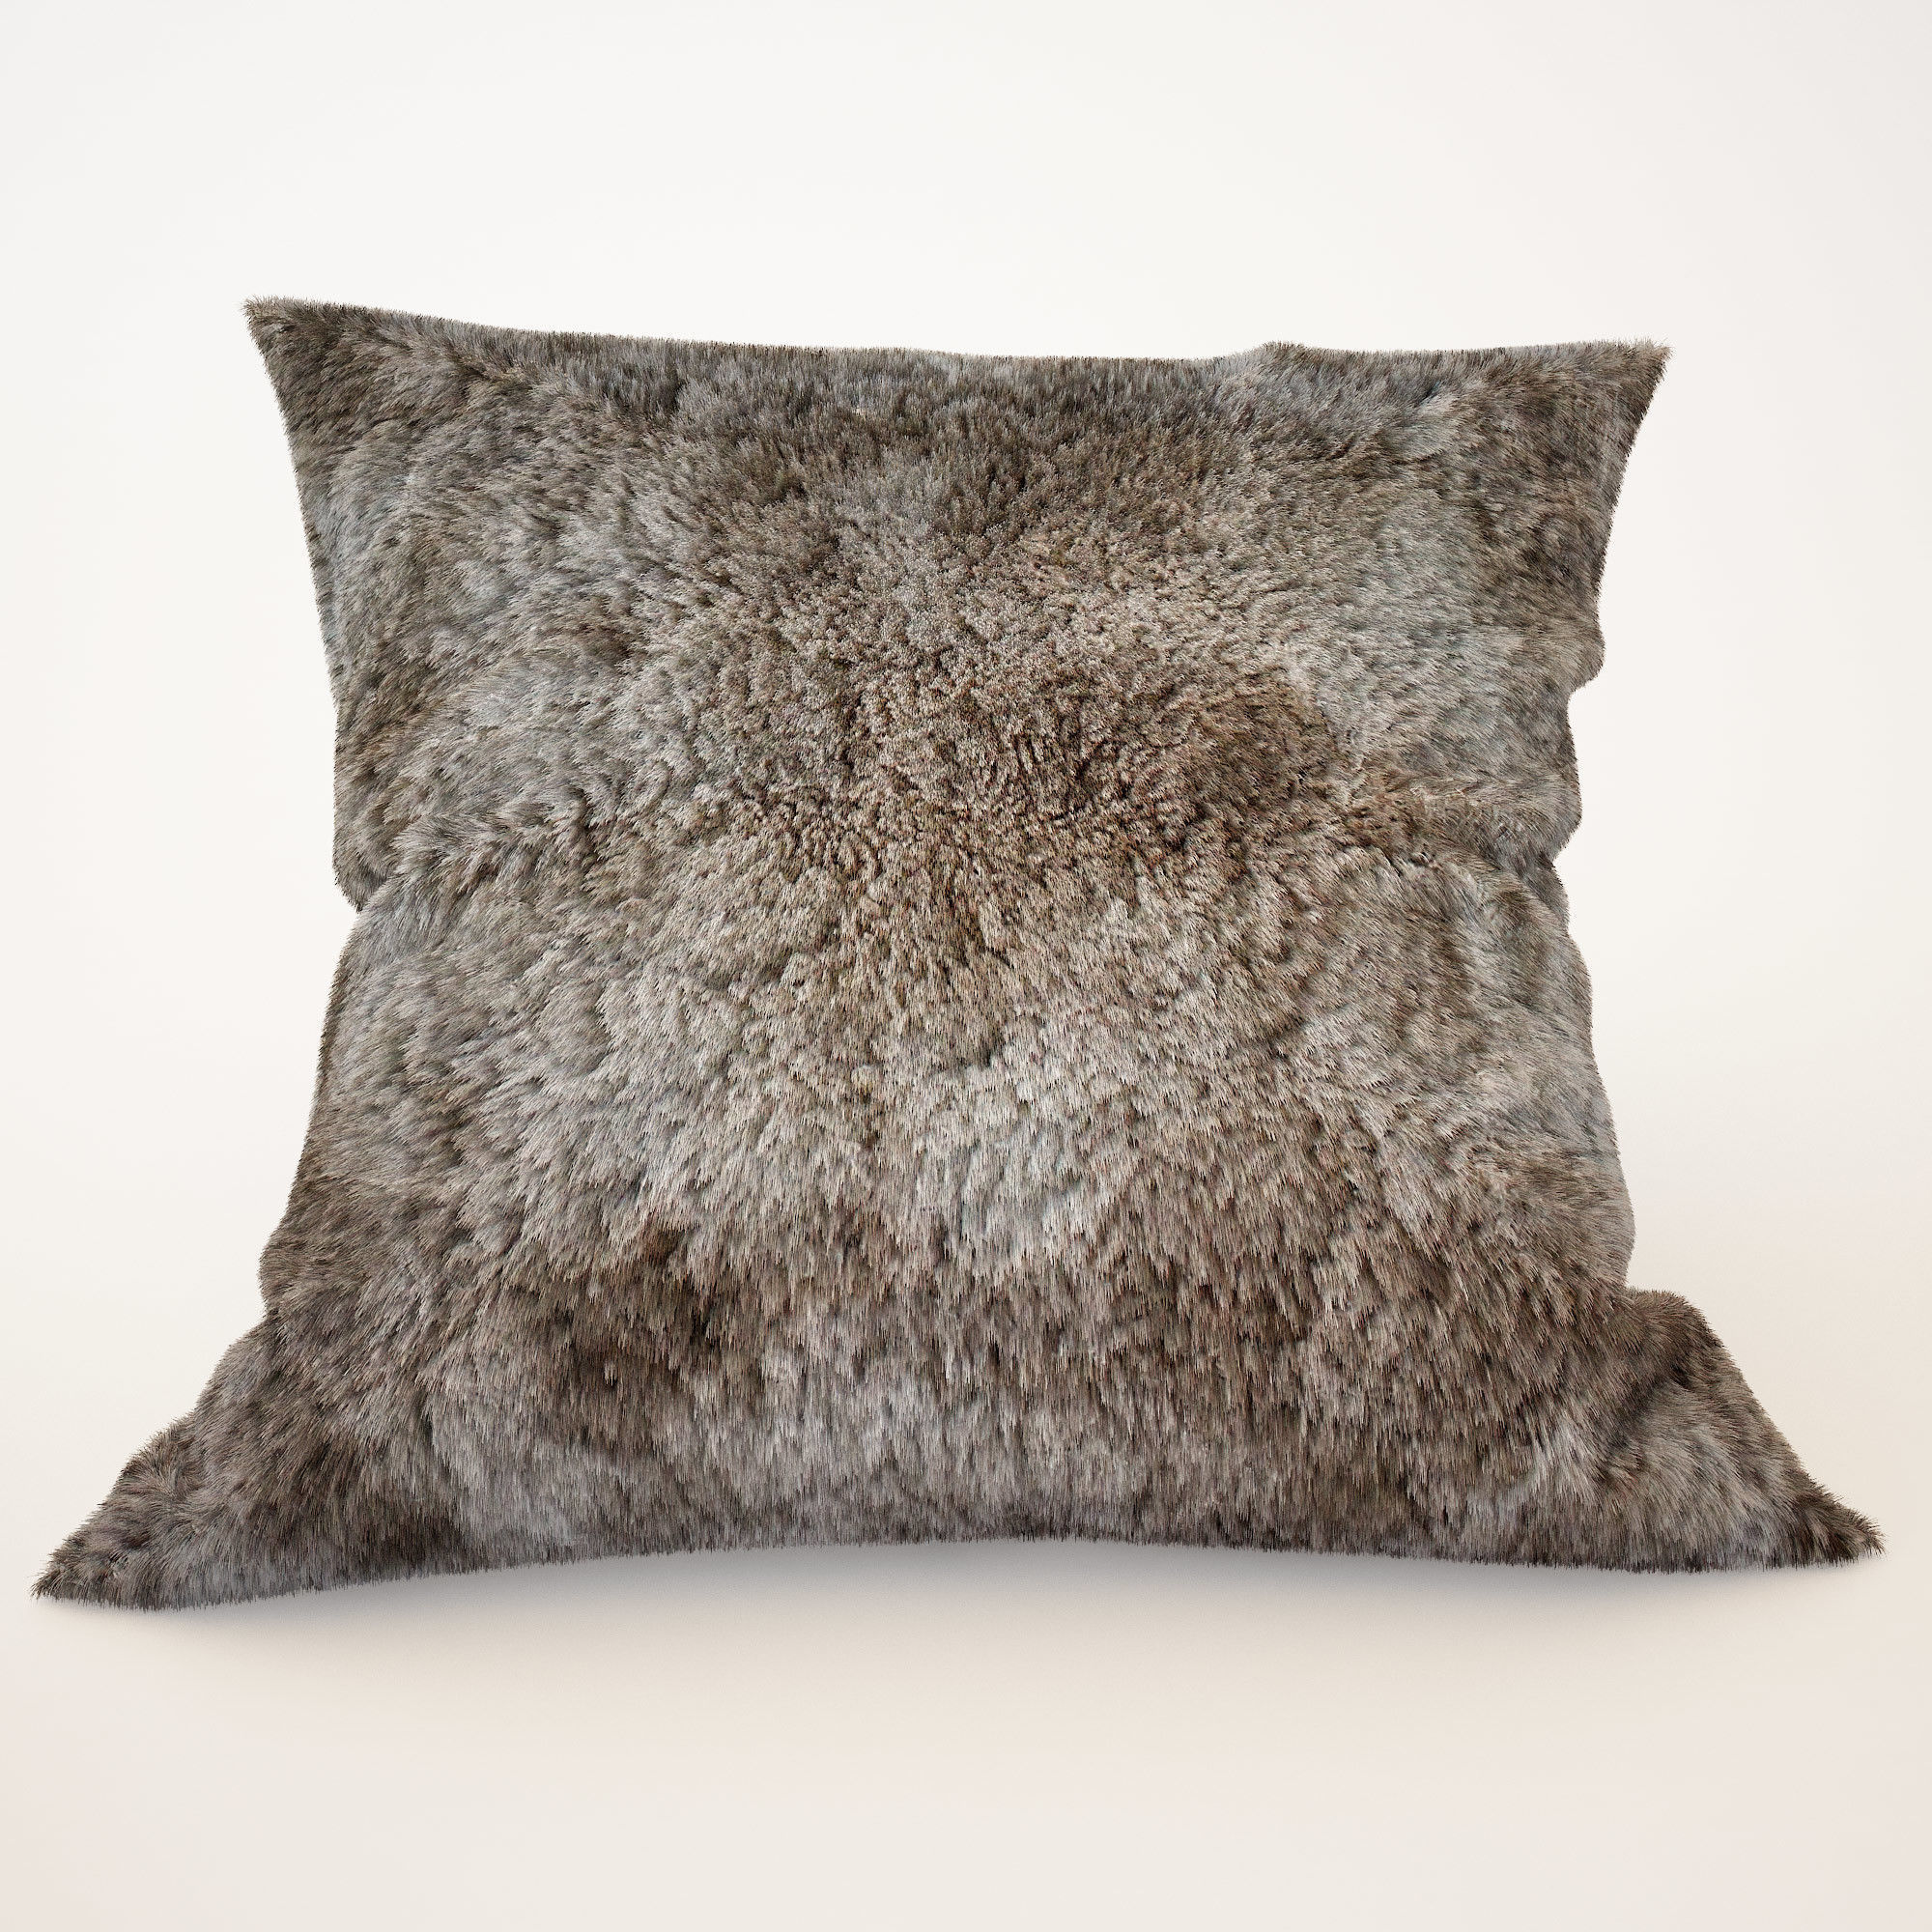 ethanallen pillow us pillows s throws lynx shop flip richmond fur alt faux decor en